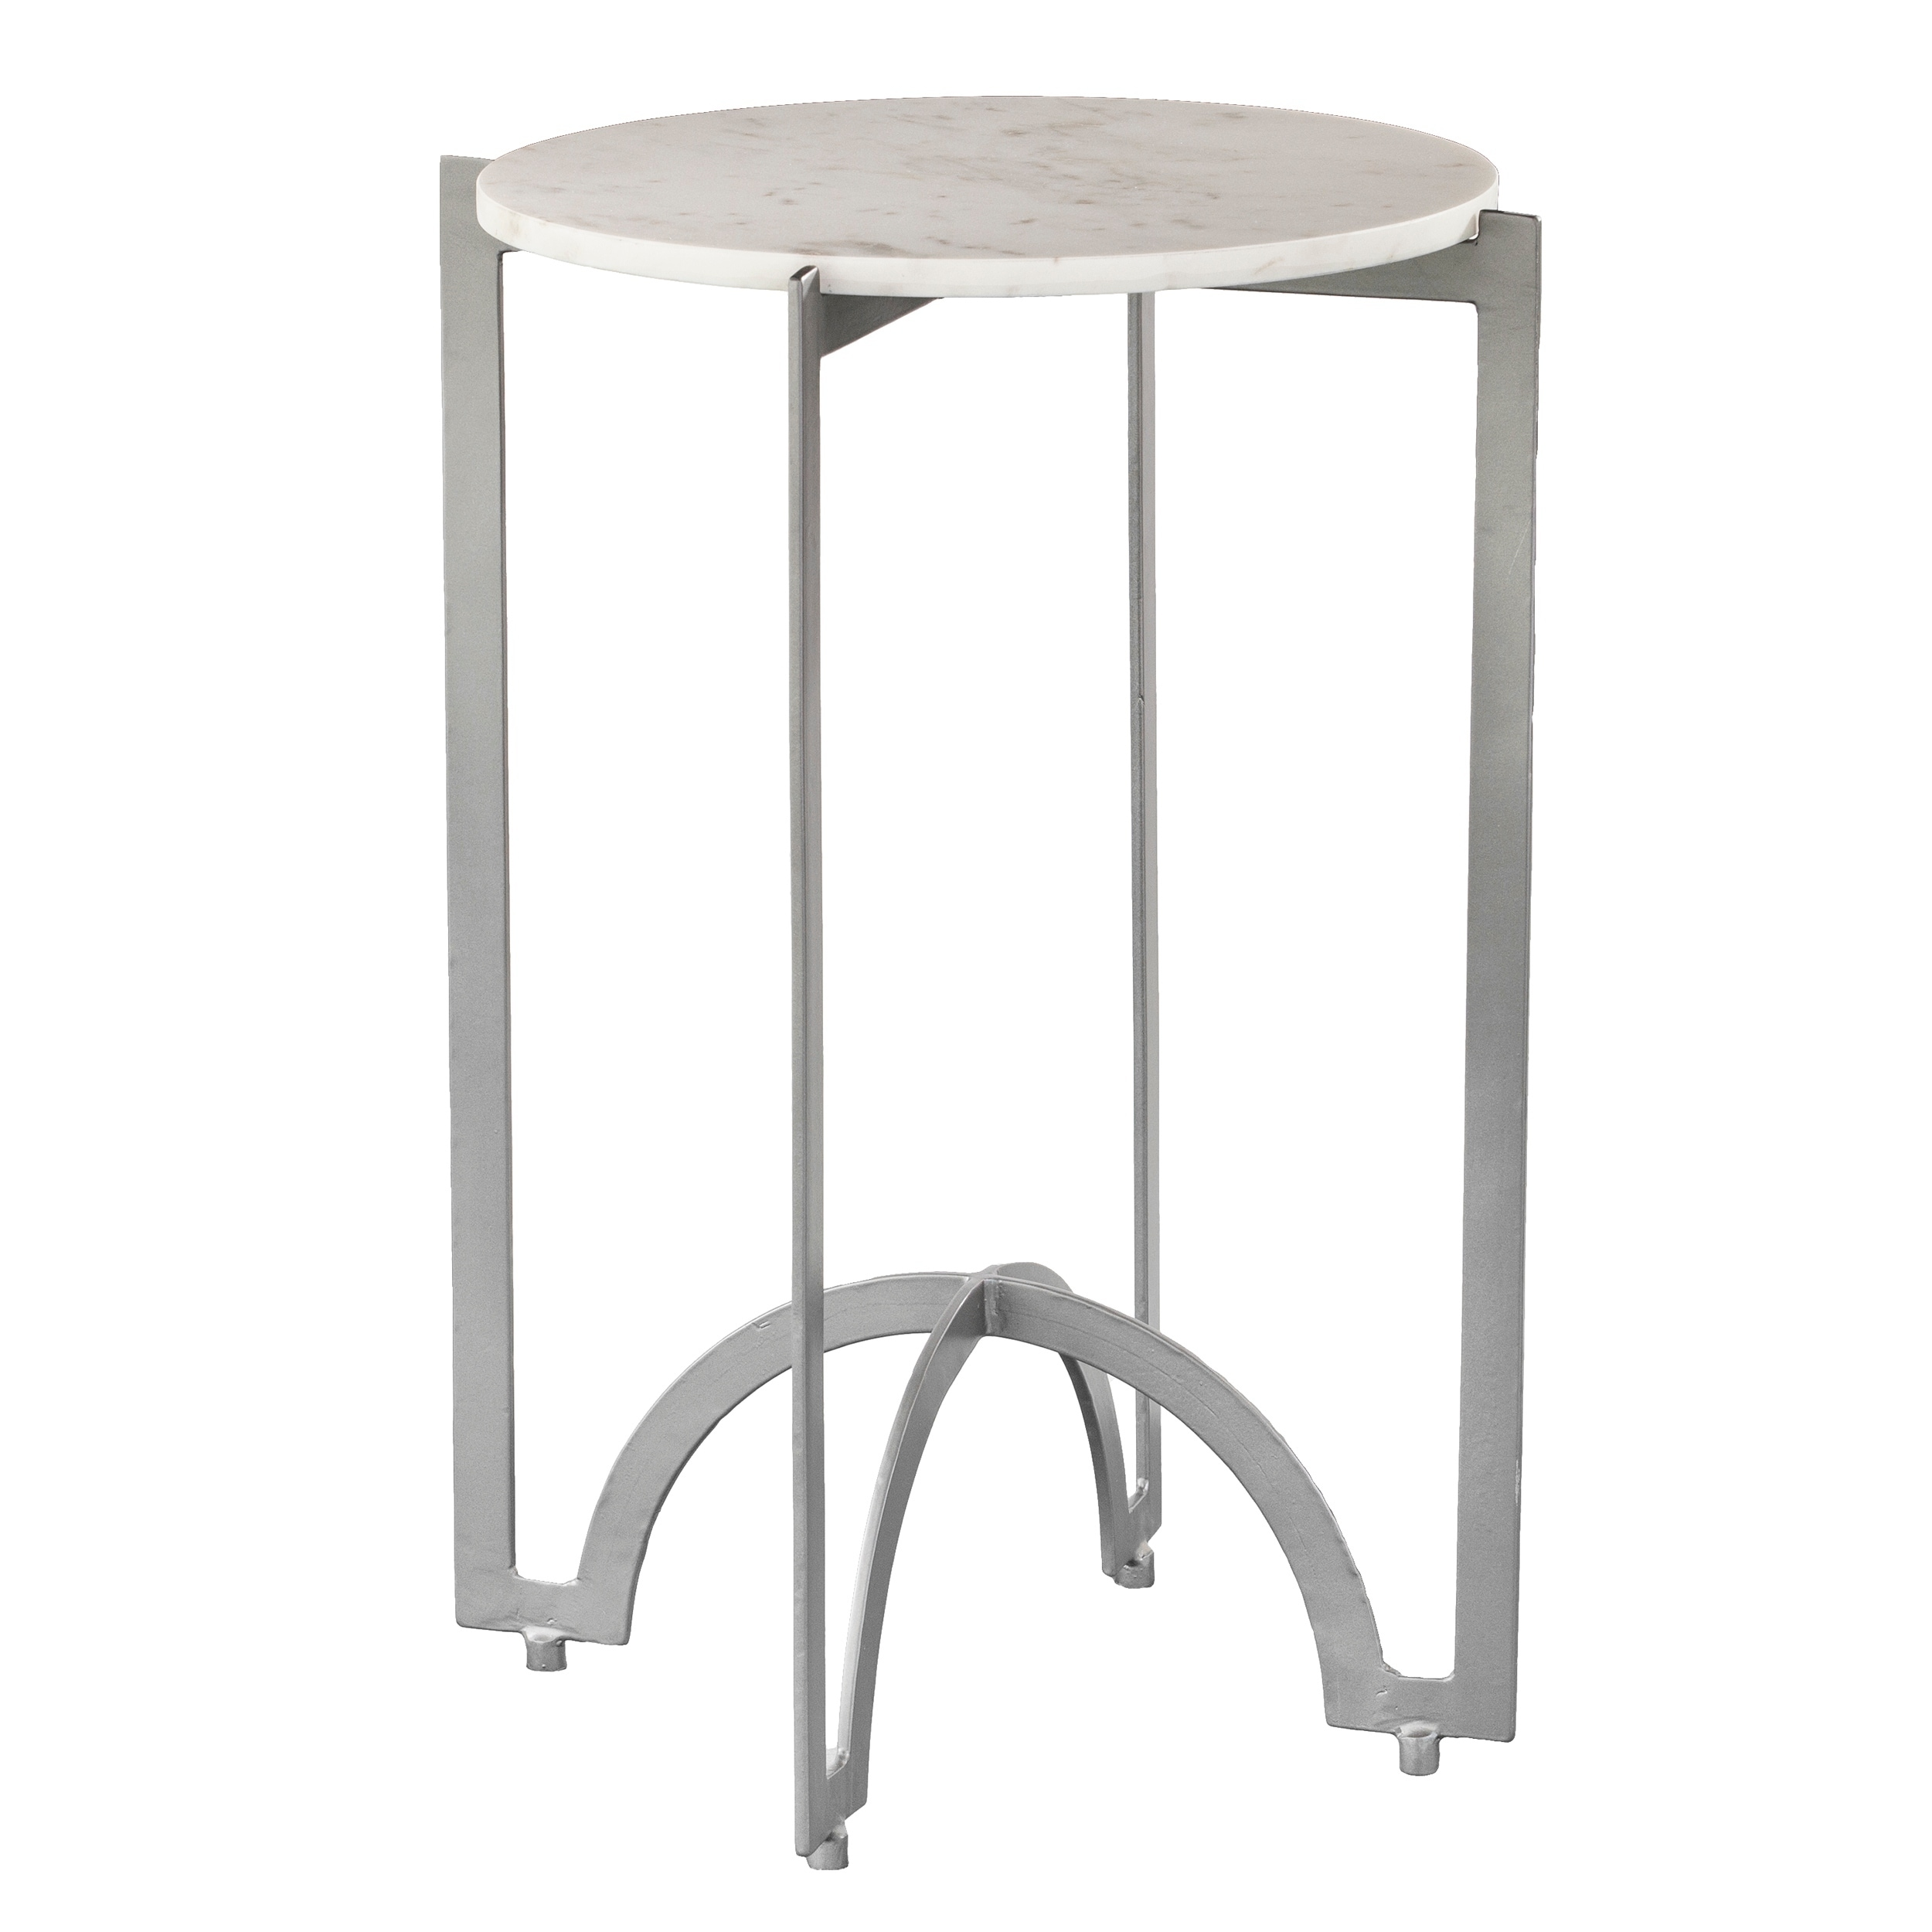 harper blvd therra grey metal marble top round accent table free shipping today slim end tables target outdoor sideboards and buffets wood drop leaf rustic gray antique tiered